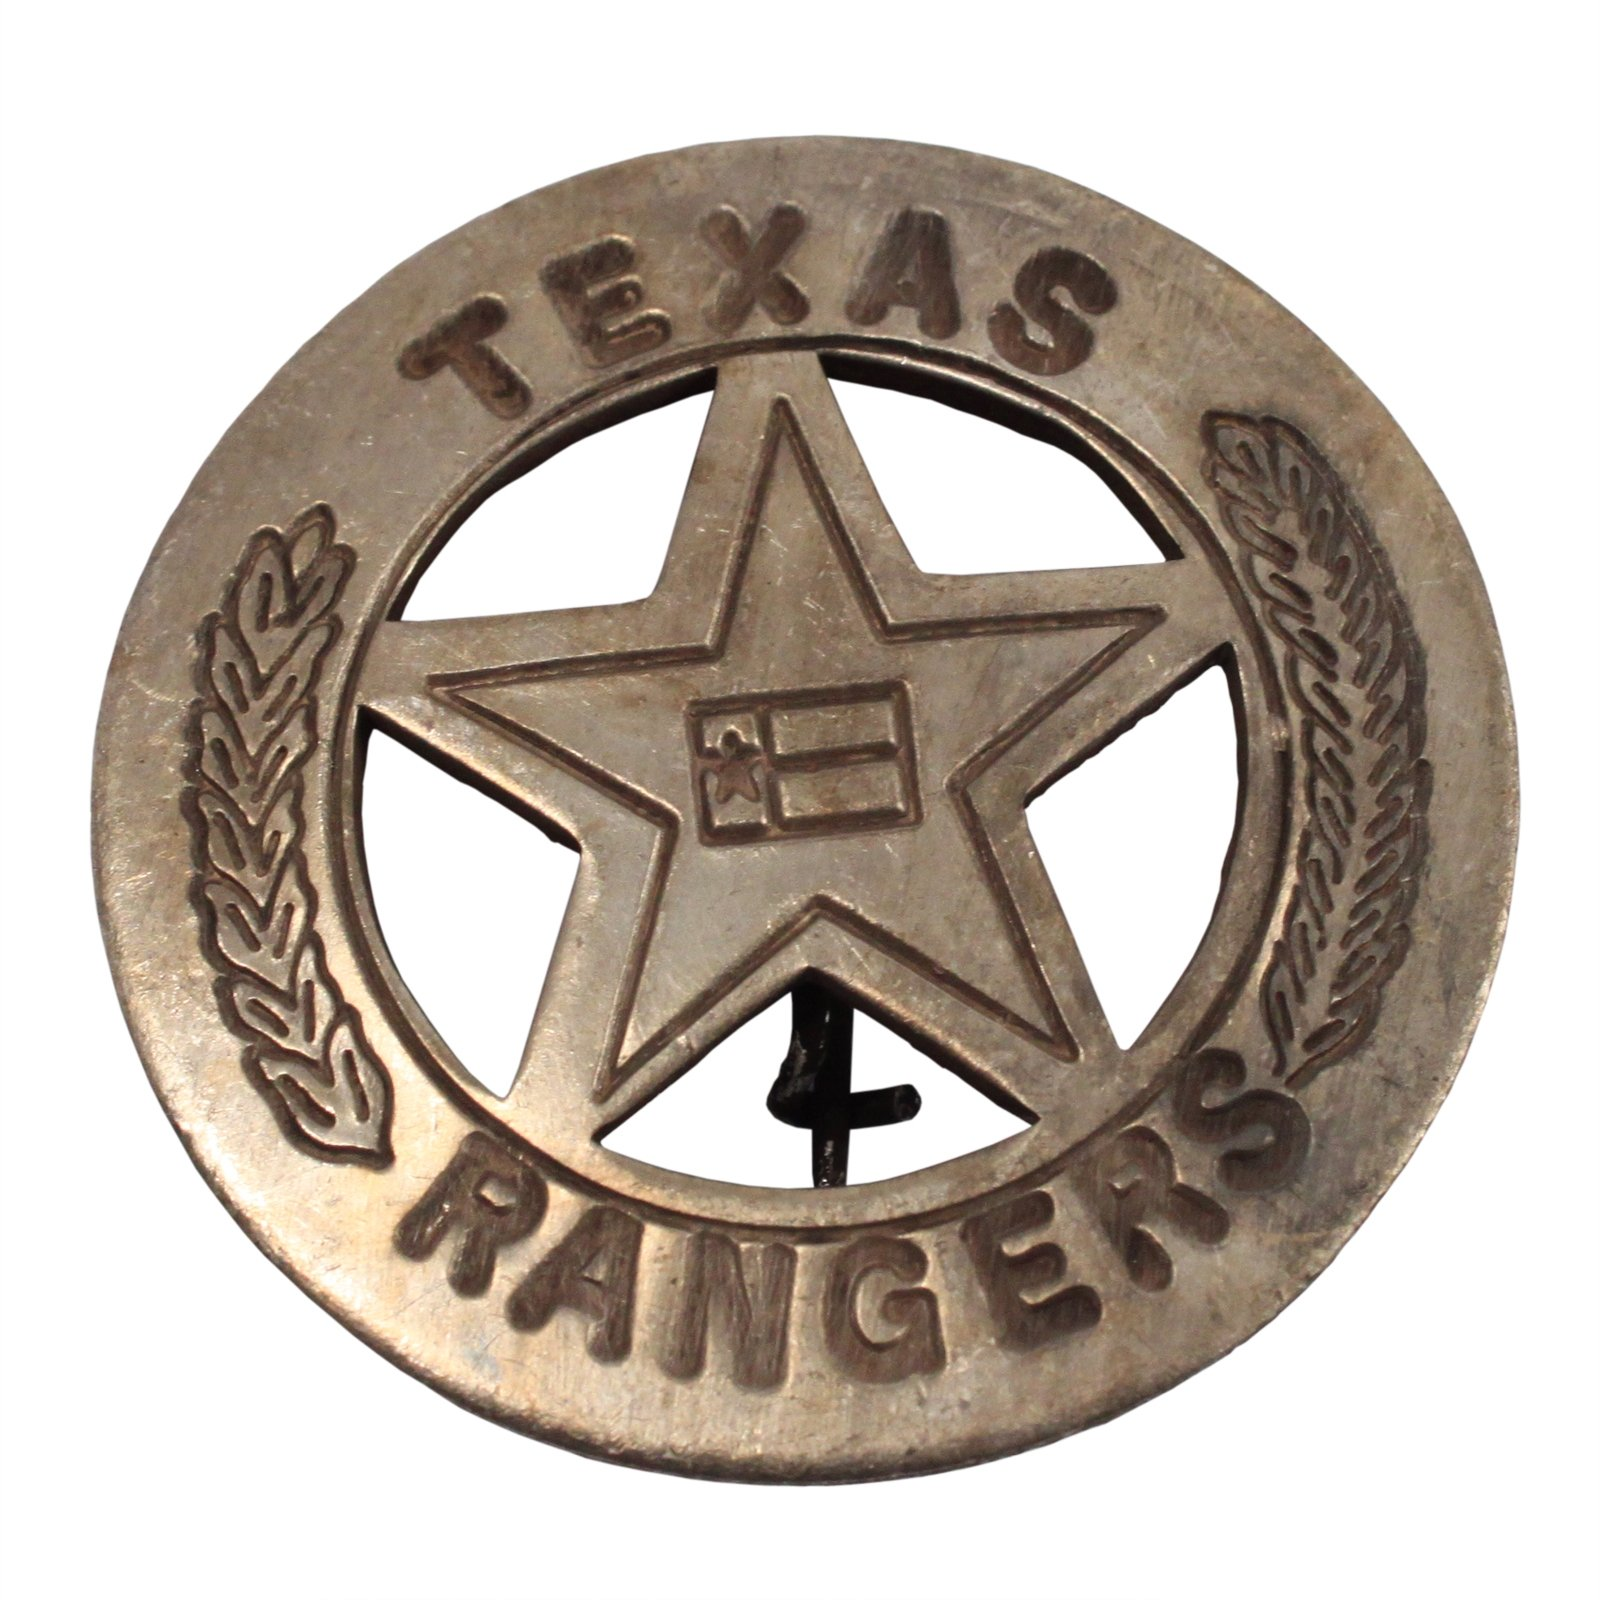 Texas Rangers Star Old West Badge